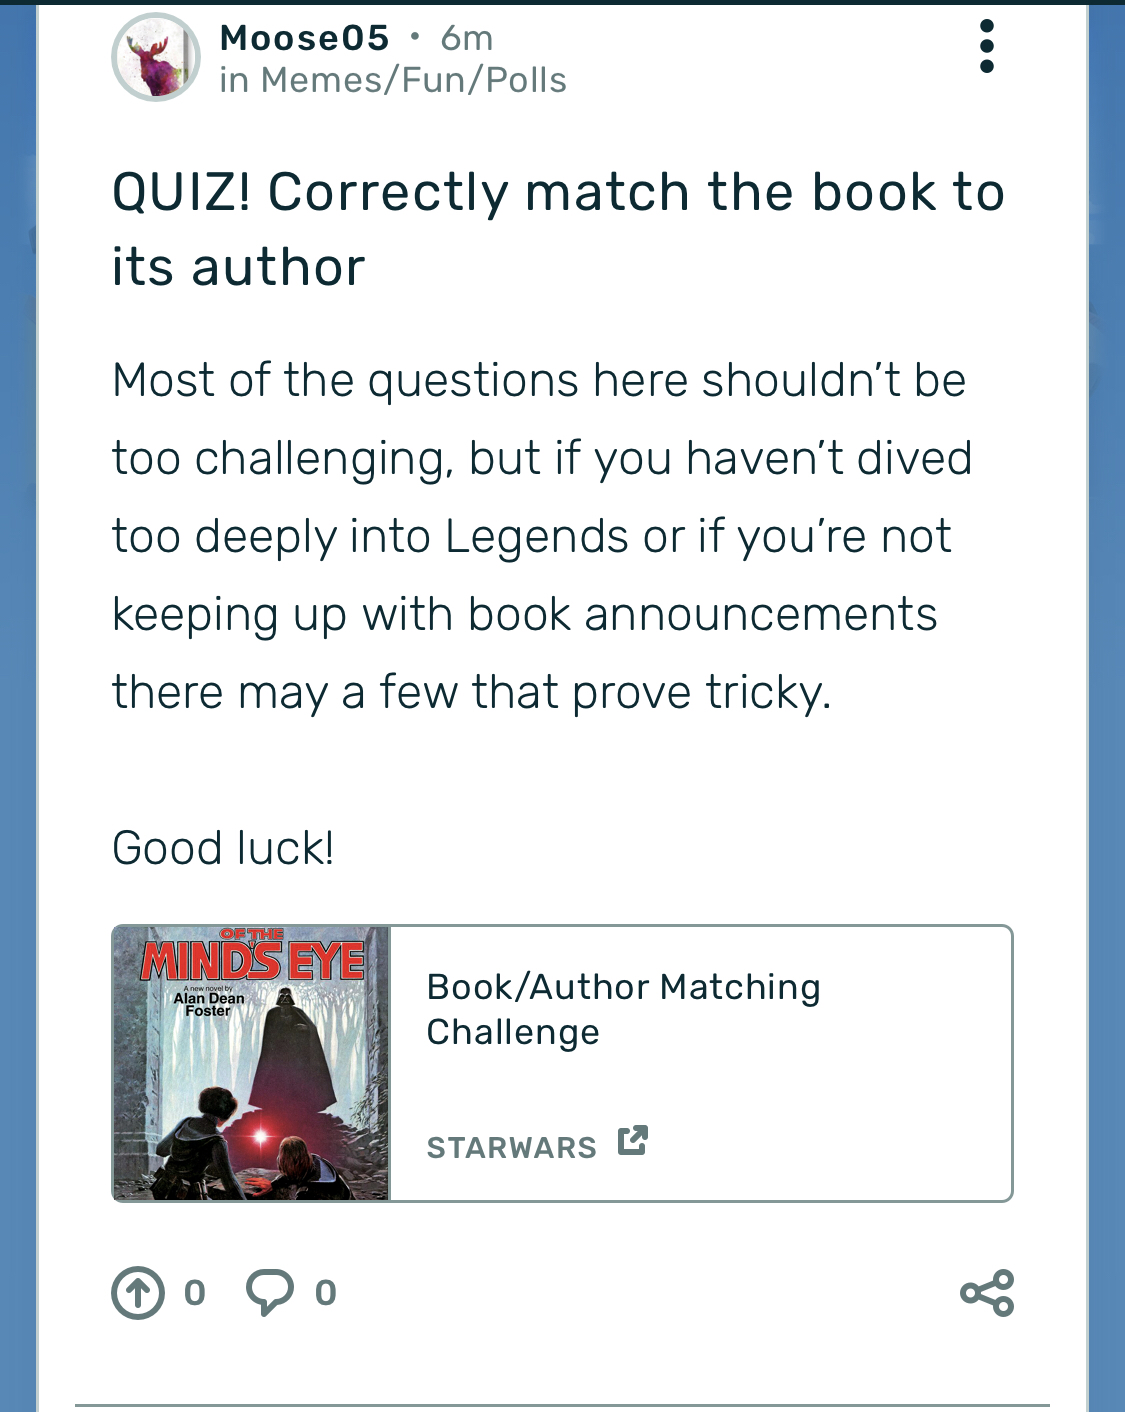 QUIZ! Correctly match the book to its author (UPDATE IN